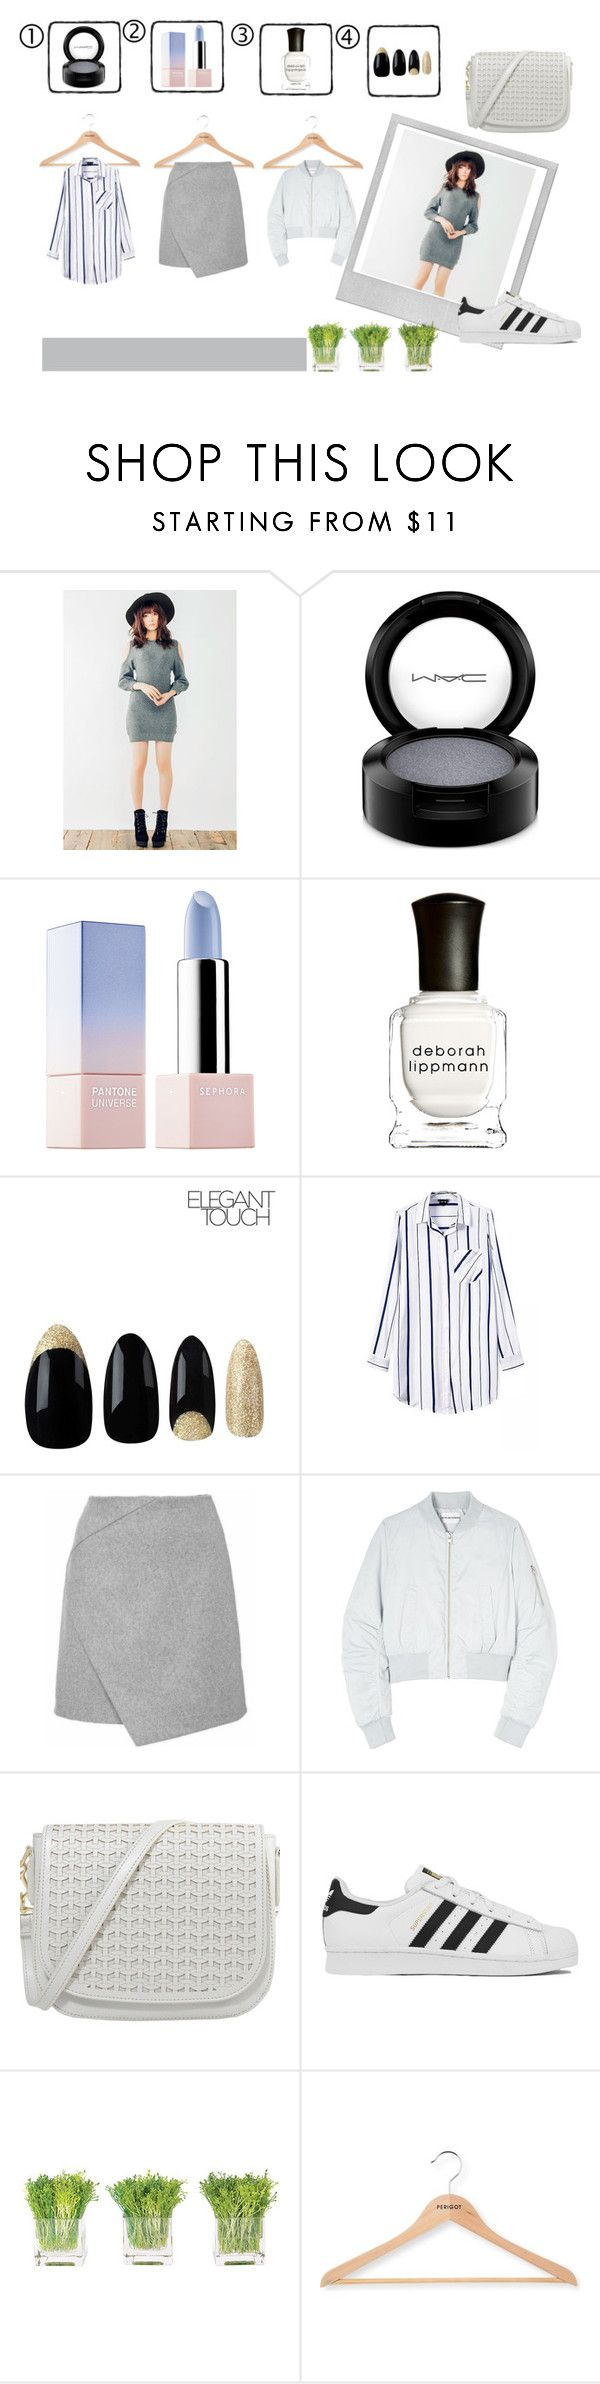 """geunine-people"" by v-papas on Polyvore featuring MAC Cosmetics, Sephora Collection, Deborah Lippmann, Won Hundred, adidas, NDI, Polaroid, PERIGOT, women's clothing and women"